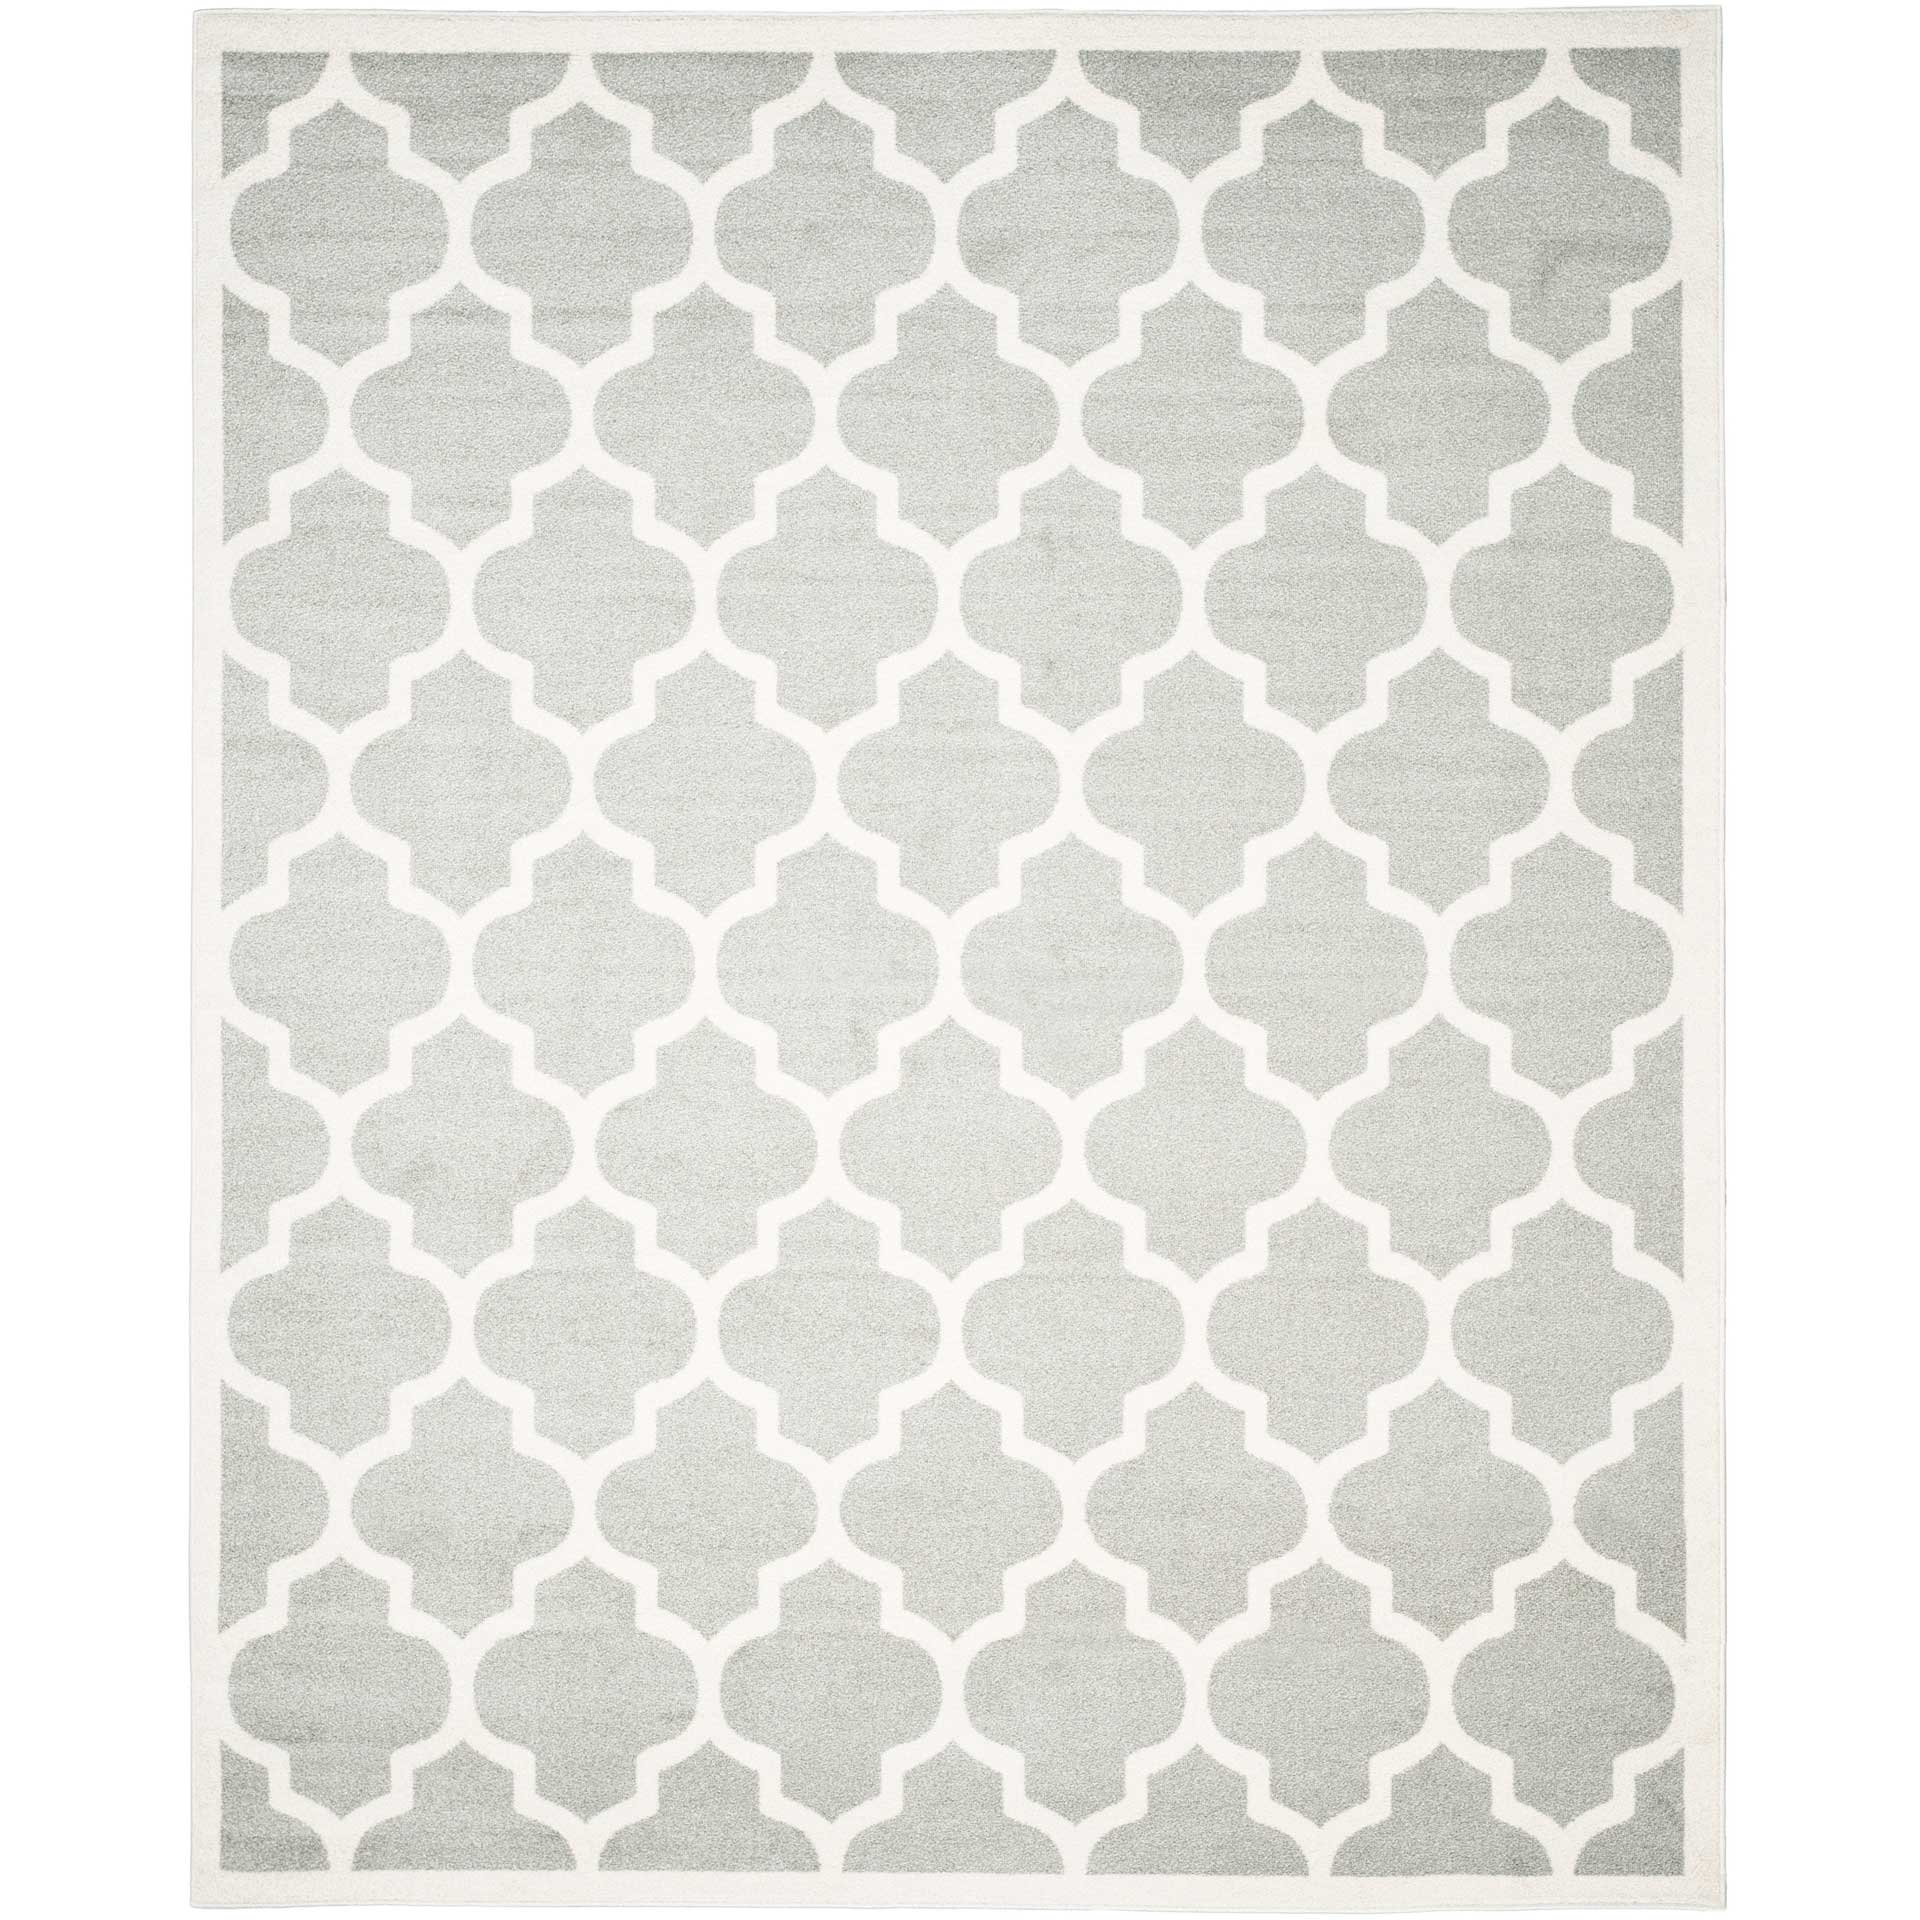 Amherst Quatrefoil Light Gray/Beige Area Rug